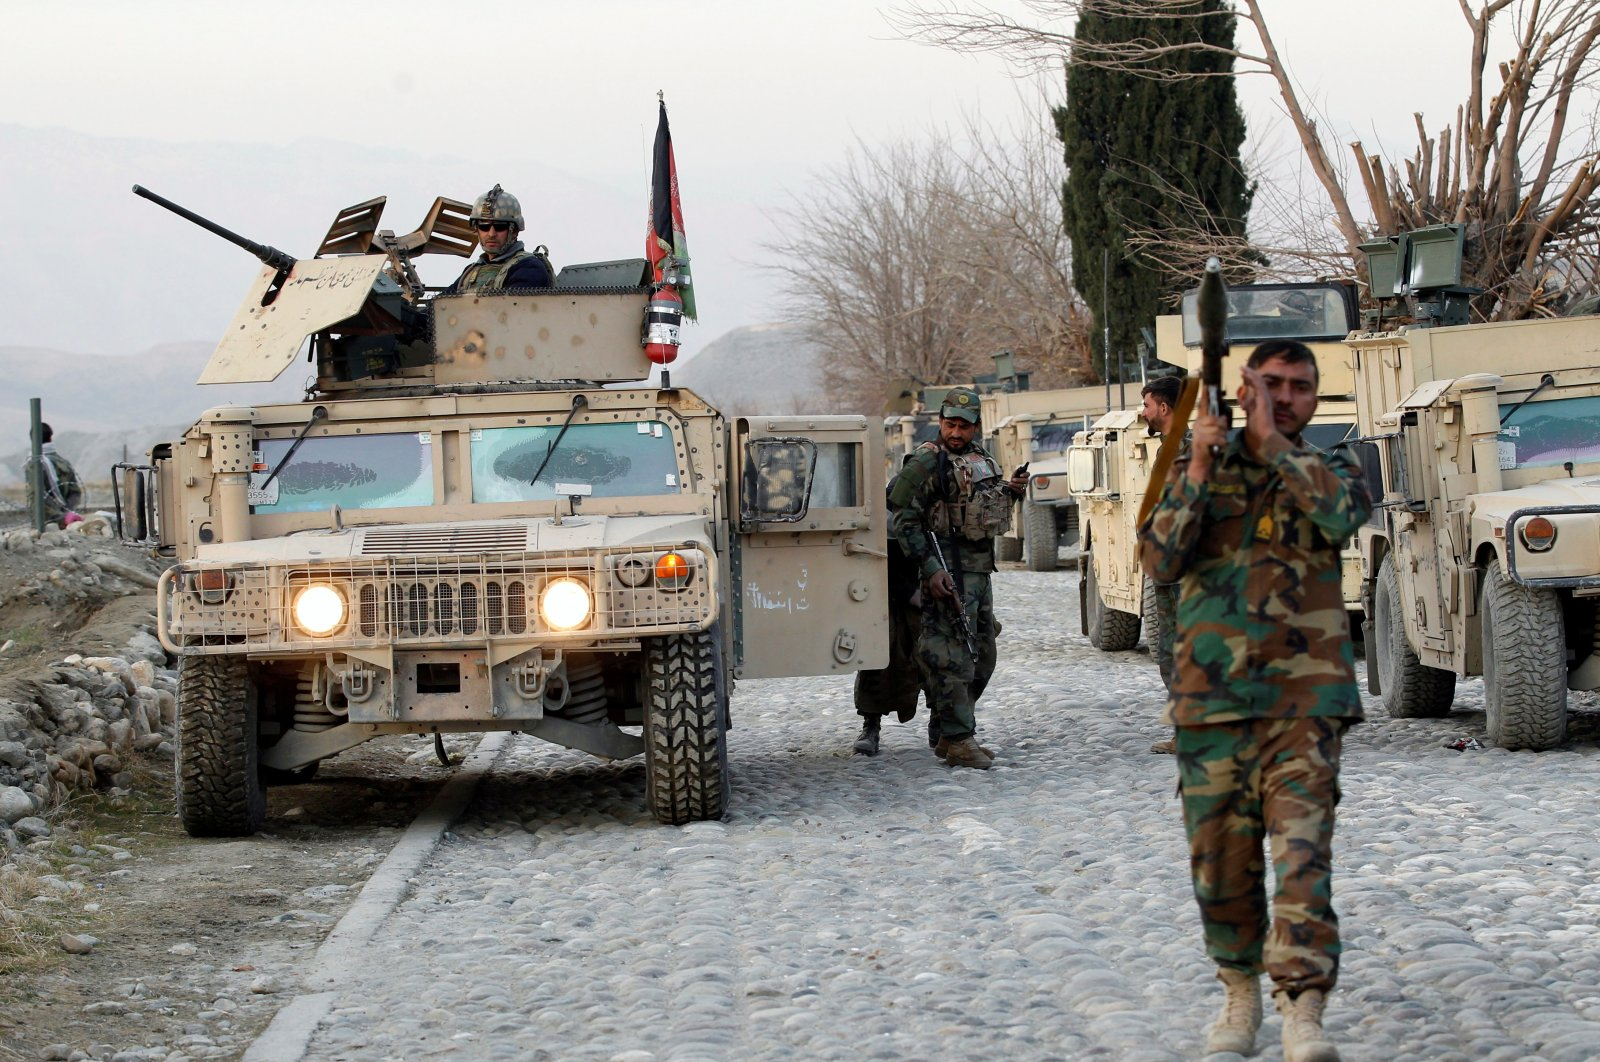 Afghan National Army soldiers inspect the site of a car bomb attack on a military base in the Shirzad district of Nangarhar province, Afghanistan, Jan. 30, 2021. (Reuters Photo)